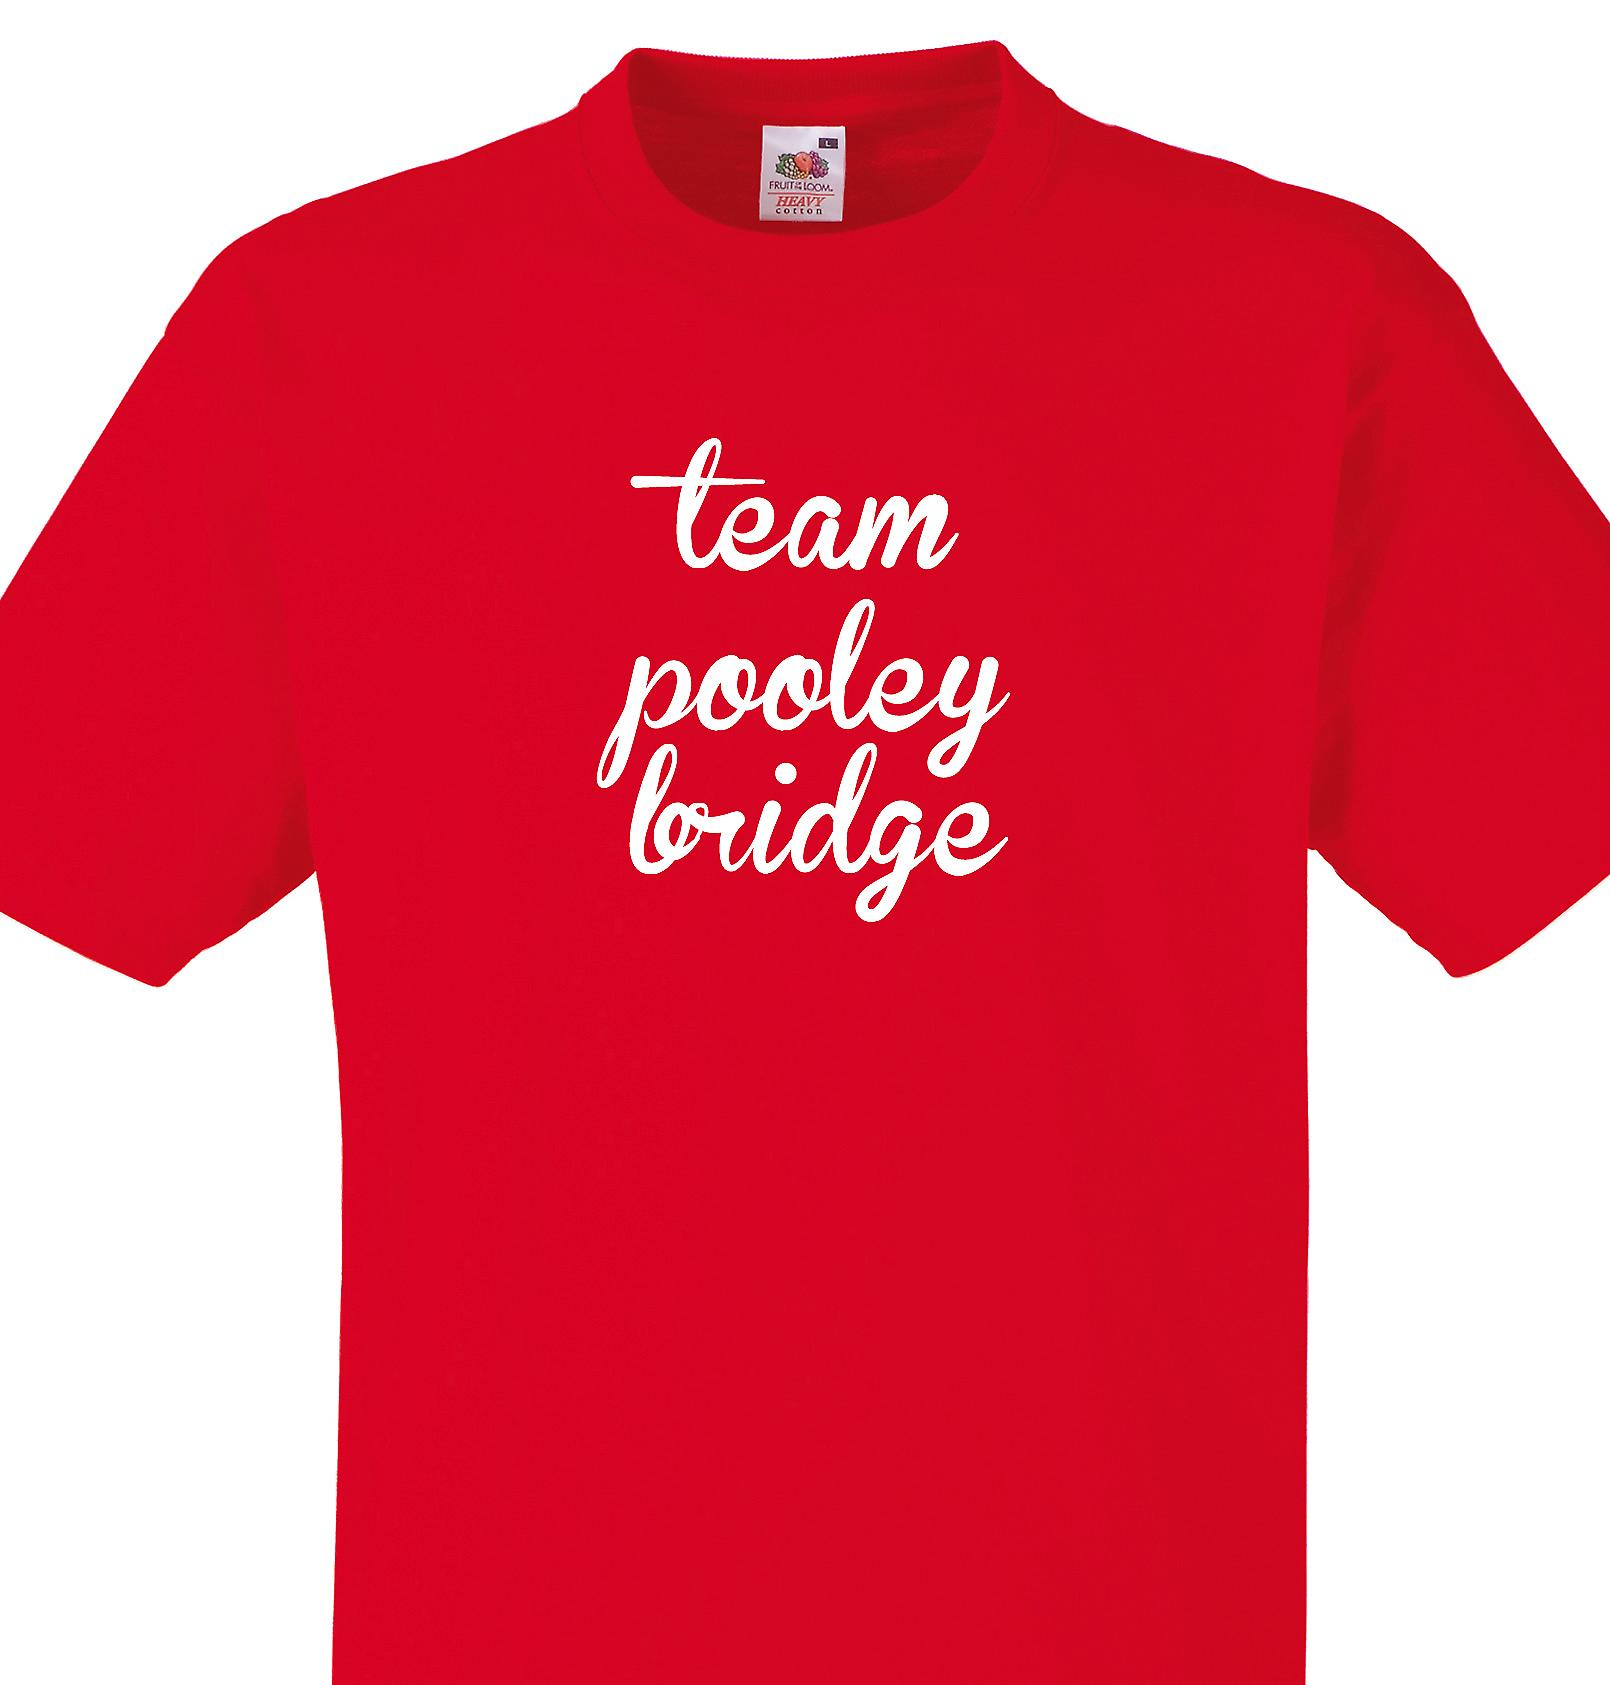 Team Pooley bridge Red T shirt